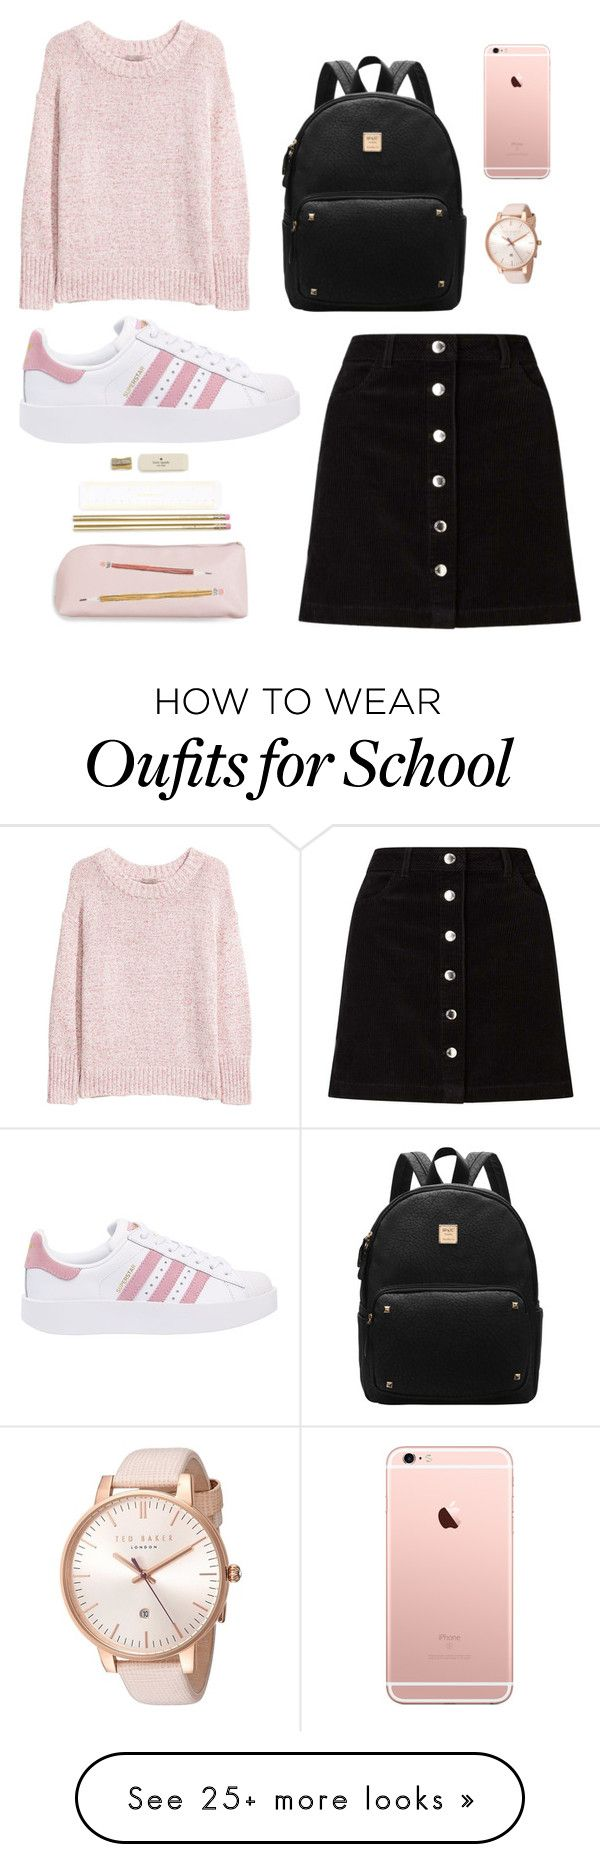 """school look"" by darrvishnya on Polyvore featuring H&M, Miss Selfridge, adidas Originals, Ted Baker and Kate Spade"